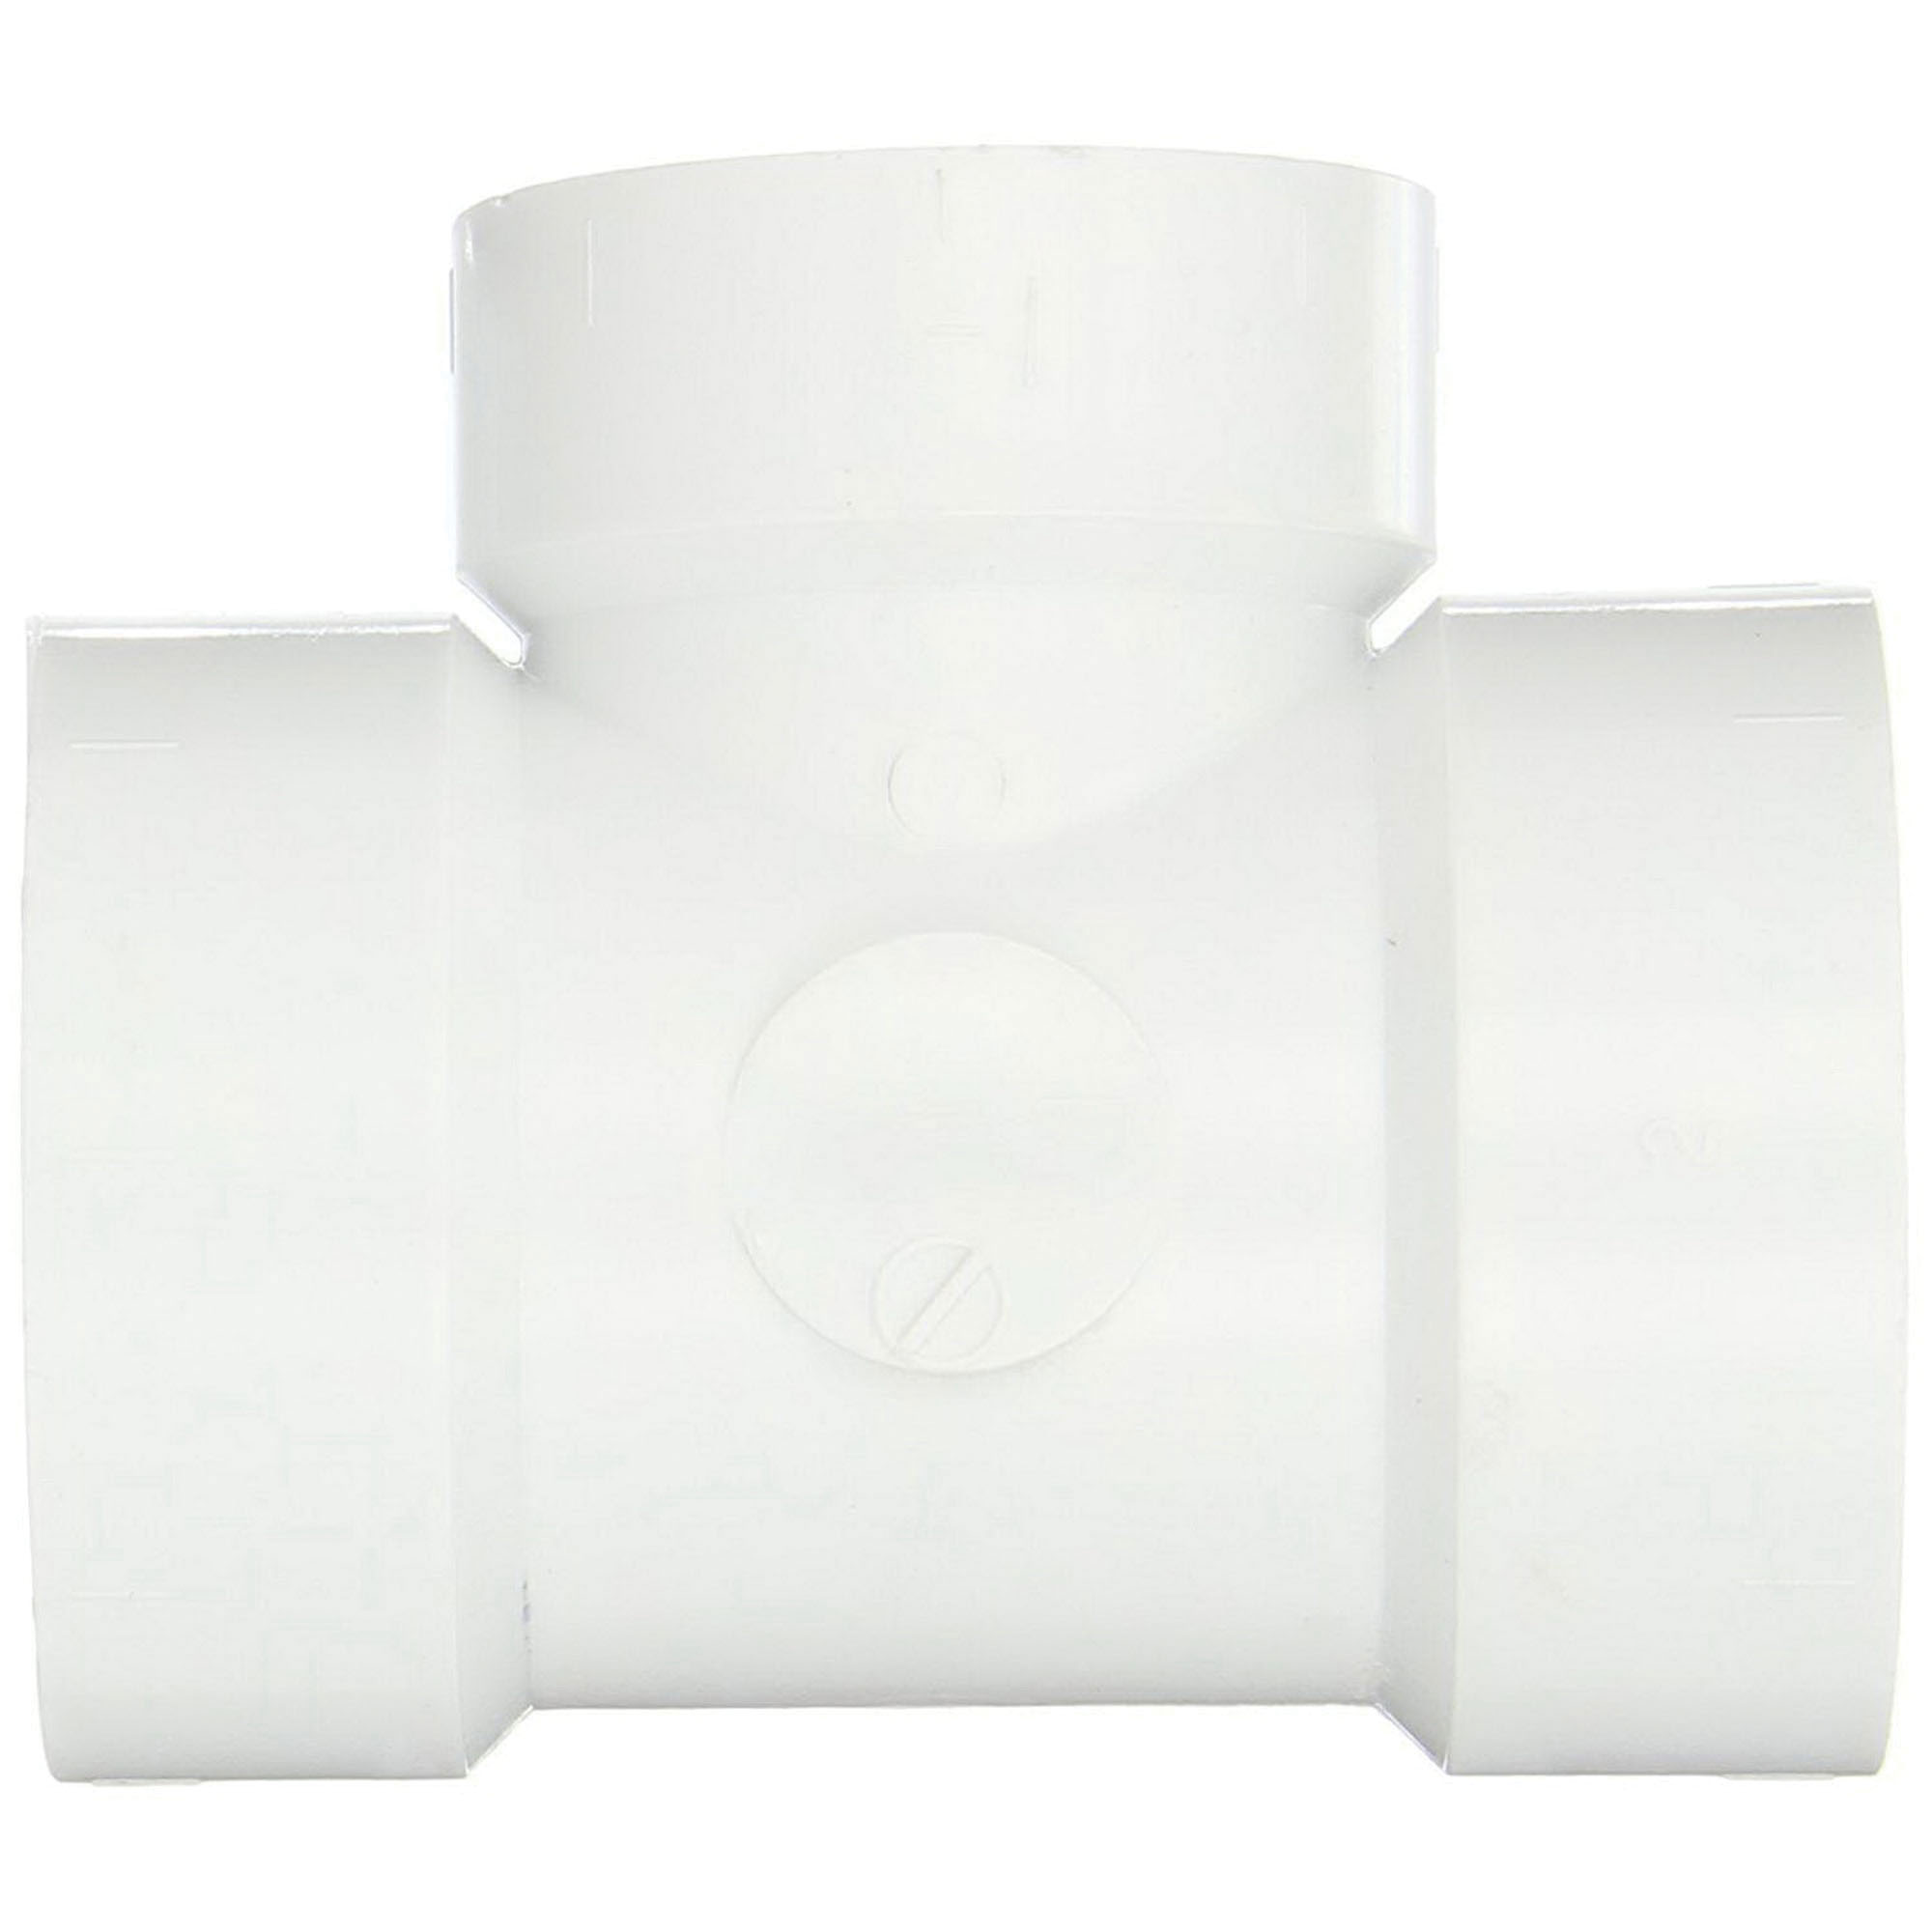 PVC DWV Reducing Vent Tee, 12 in x 12 in x 6 in, Hub